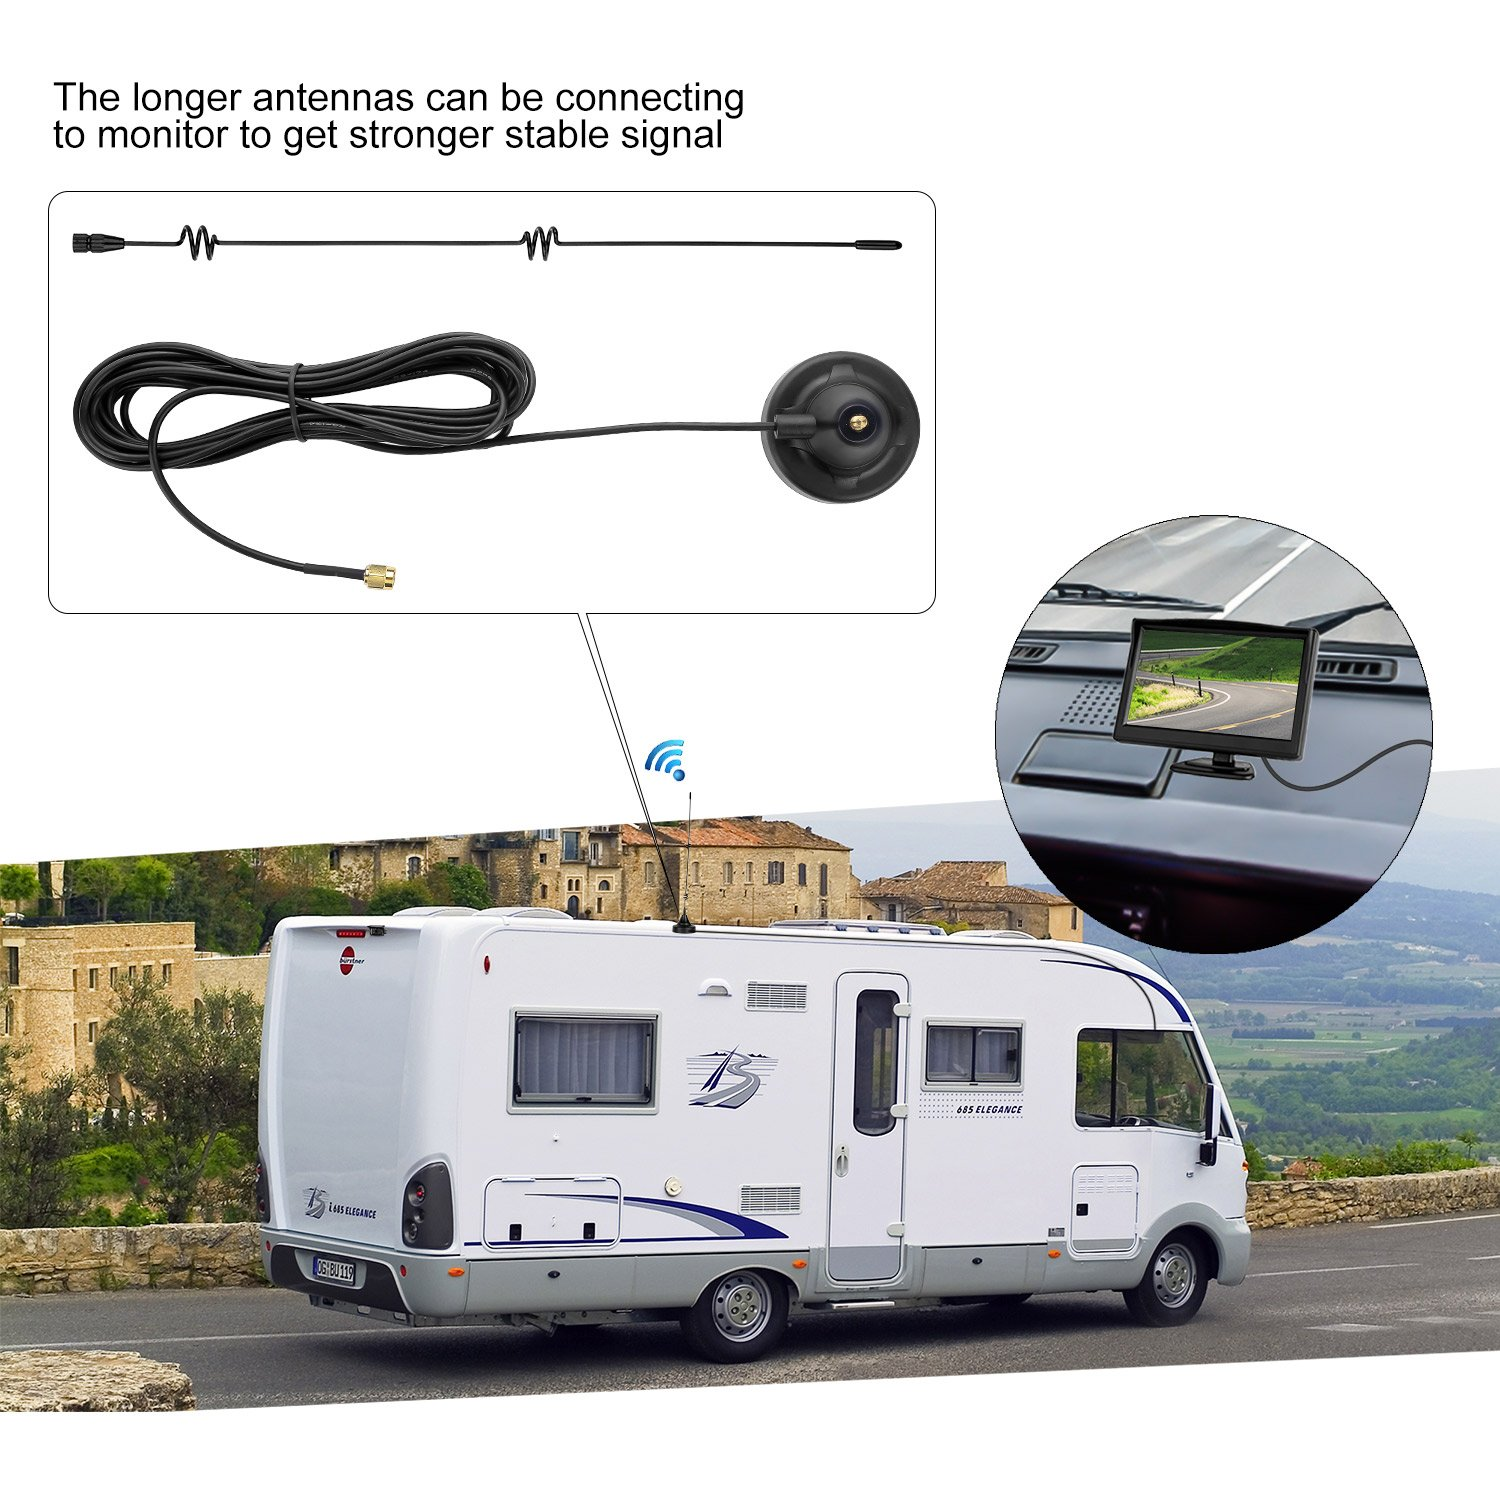 LeeKooLuu Longer//Stronger 7db Antenna with 13.5 ft Extension Cable for Analog//Digital Signal Wireless Built-in Backup Camera and Monitor Systems or Other Devices